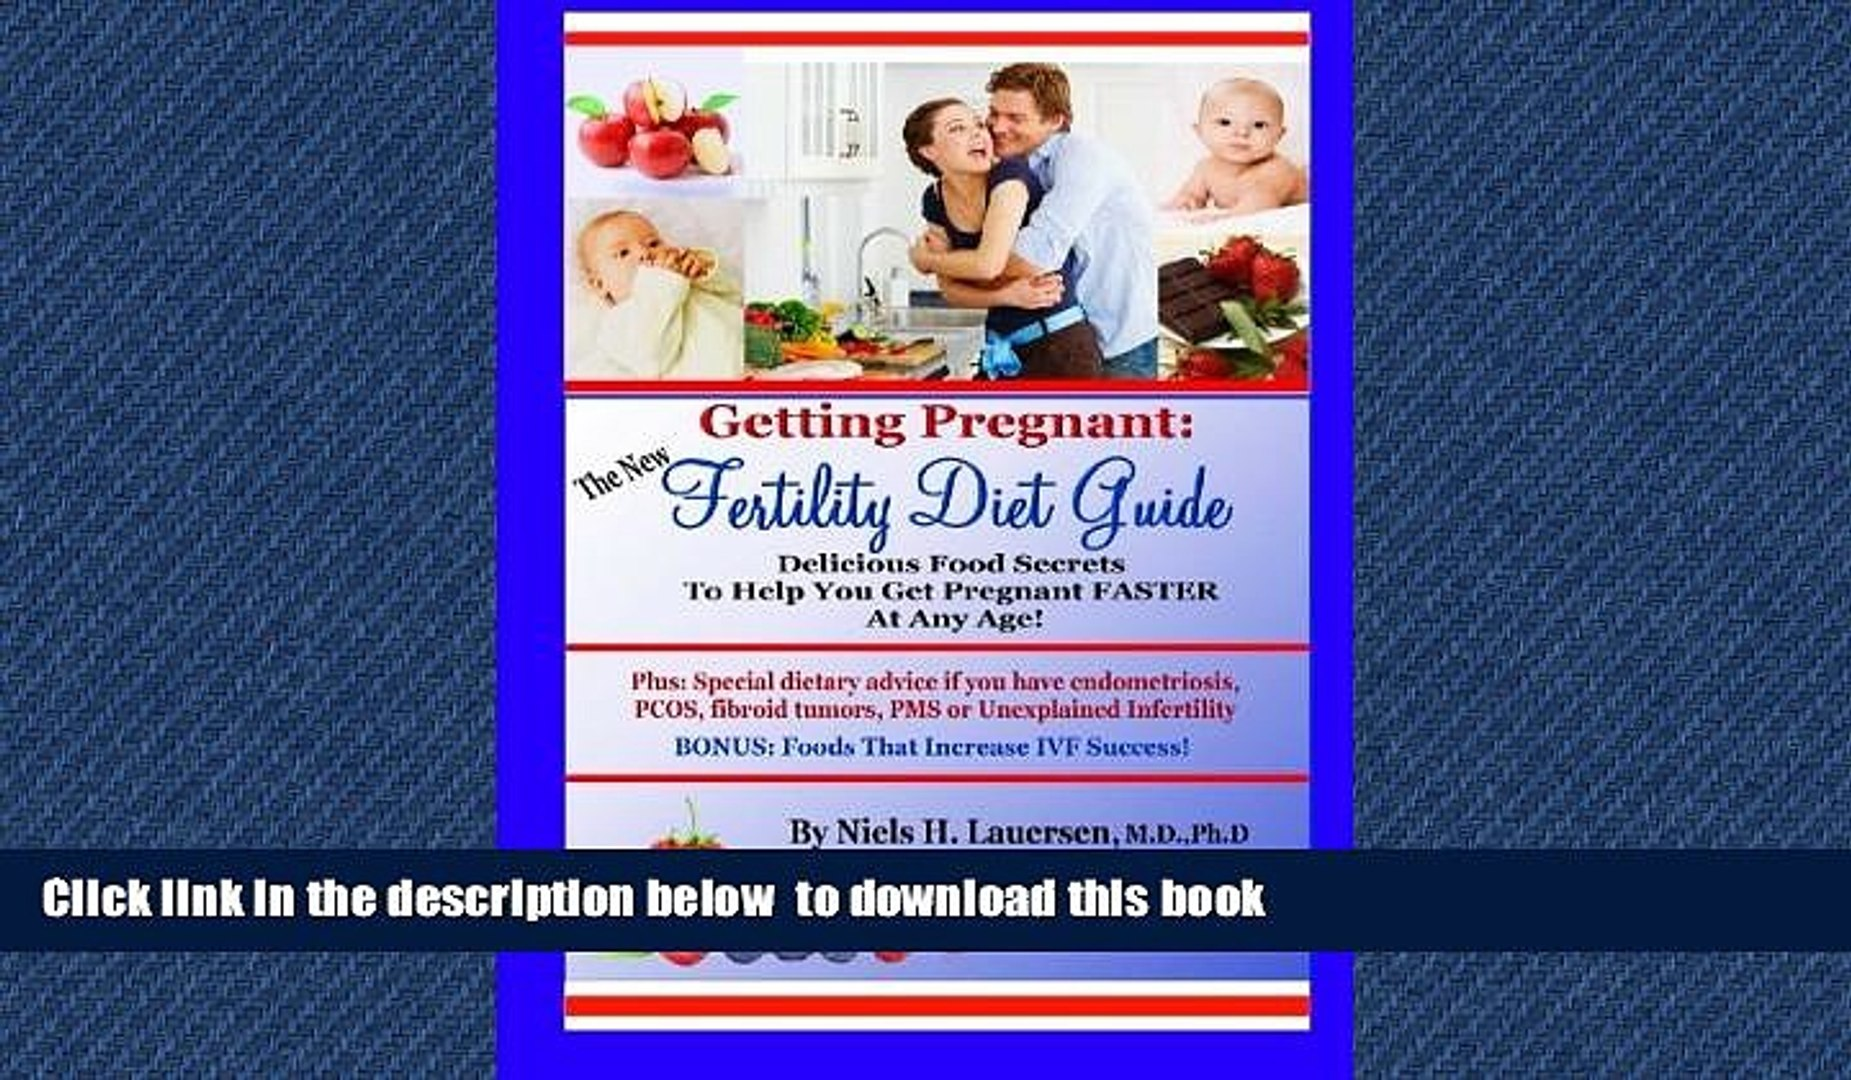 The New Fertility Diet Guide: Delicious Food Secrets To Help You Get Pregnant Faster At Any Age!